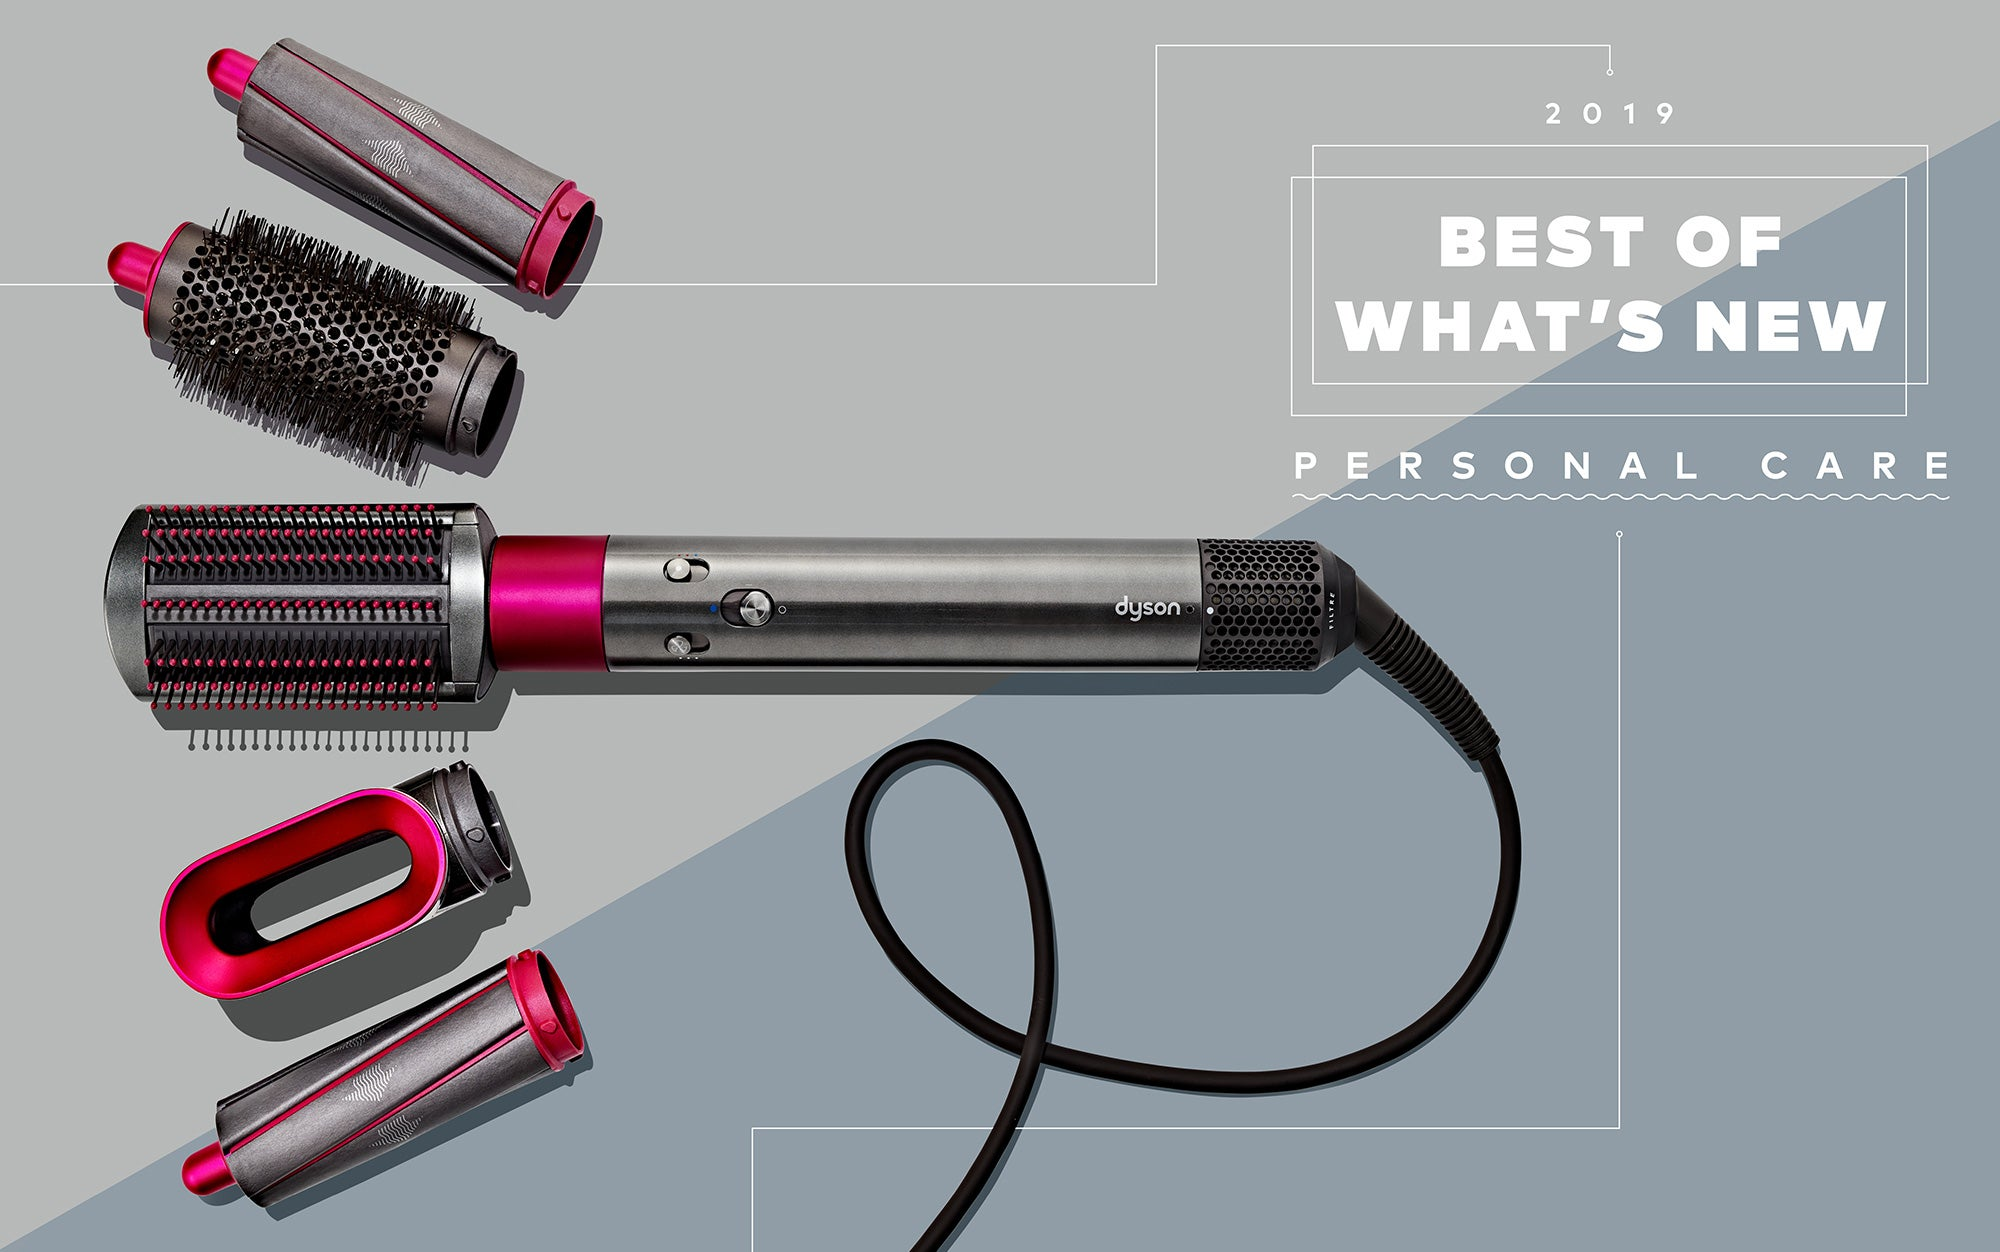 The year's most exciting innovations in personal care